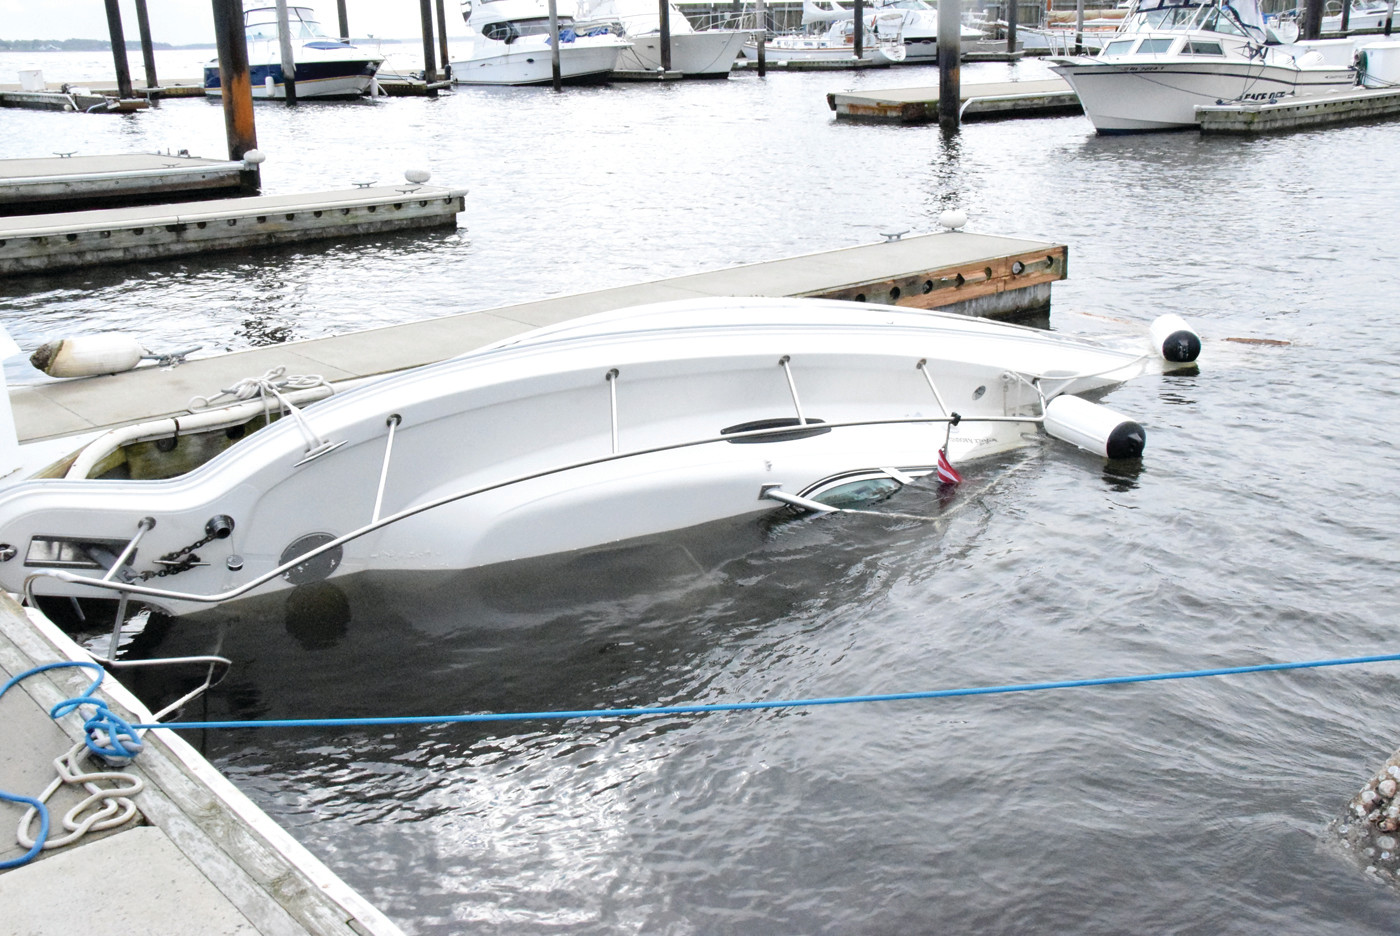 SUNKEN COSTS: A boat sits totally capsized after it broke free of its spring lines in the storm's harsh weather while docked in Greenwich Bay Marina. Many boats that were  improperly tethered suffered serious damage, while those who took proper precuations were able to avoid major damage